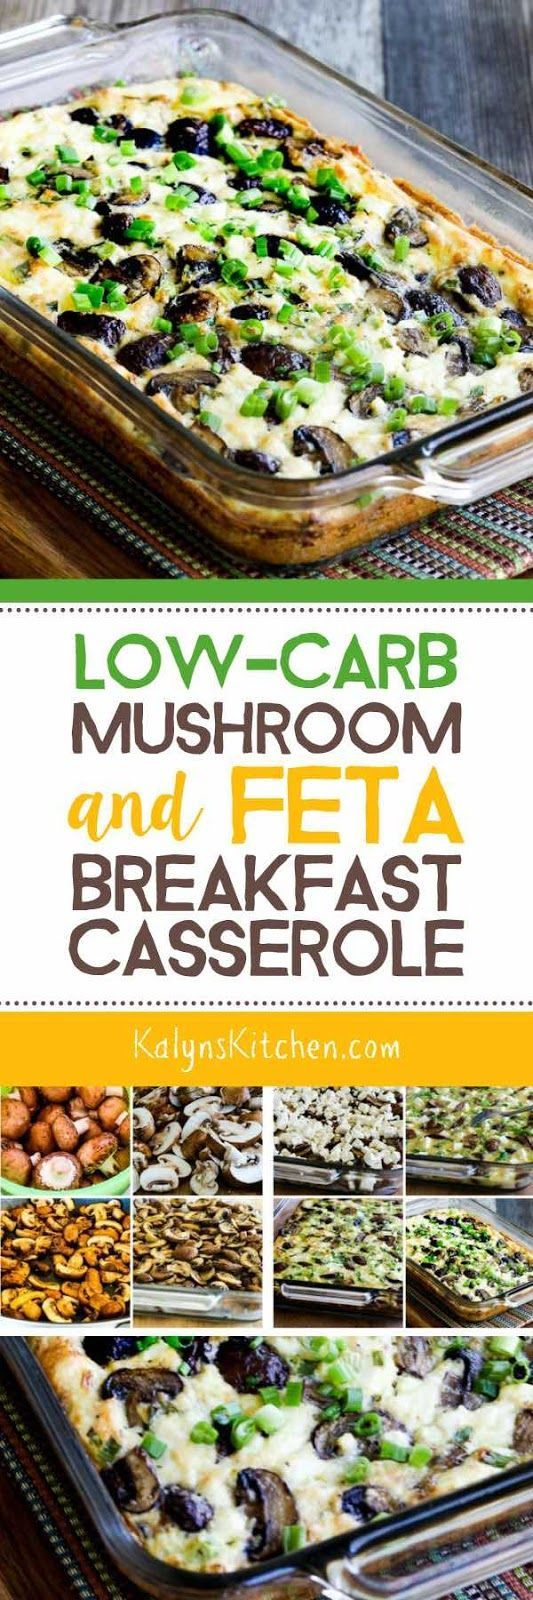 Low-Carb Mushroom and Feta Breakfast Casserole is one of my absolute FAVORITE combinations for a low-carb breakfast bake. This is perfect to make on the weekend and reheat during the week, and this recipe is also Keto, low-glycemic, gluten-free, and meatless. I make this over and over, and if you like these ingredients, it's a MUST-TRY! [found on KalynsKitchen.com] #BreakfastCasserole #LowCarbBreakfastCasserole #LowCarbMushroomFetaBreakfastCasserole #MushroomFetaBreakfastCasserole